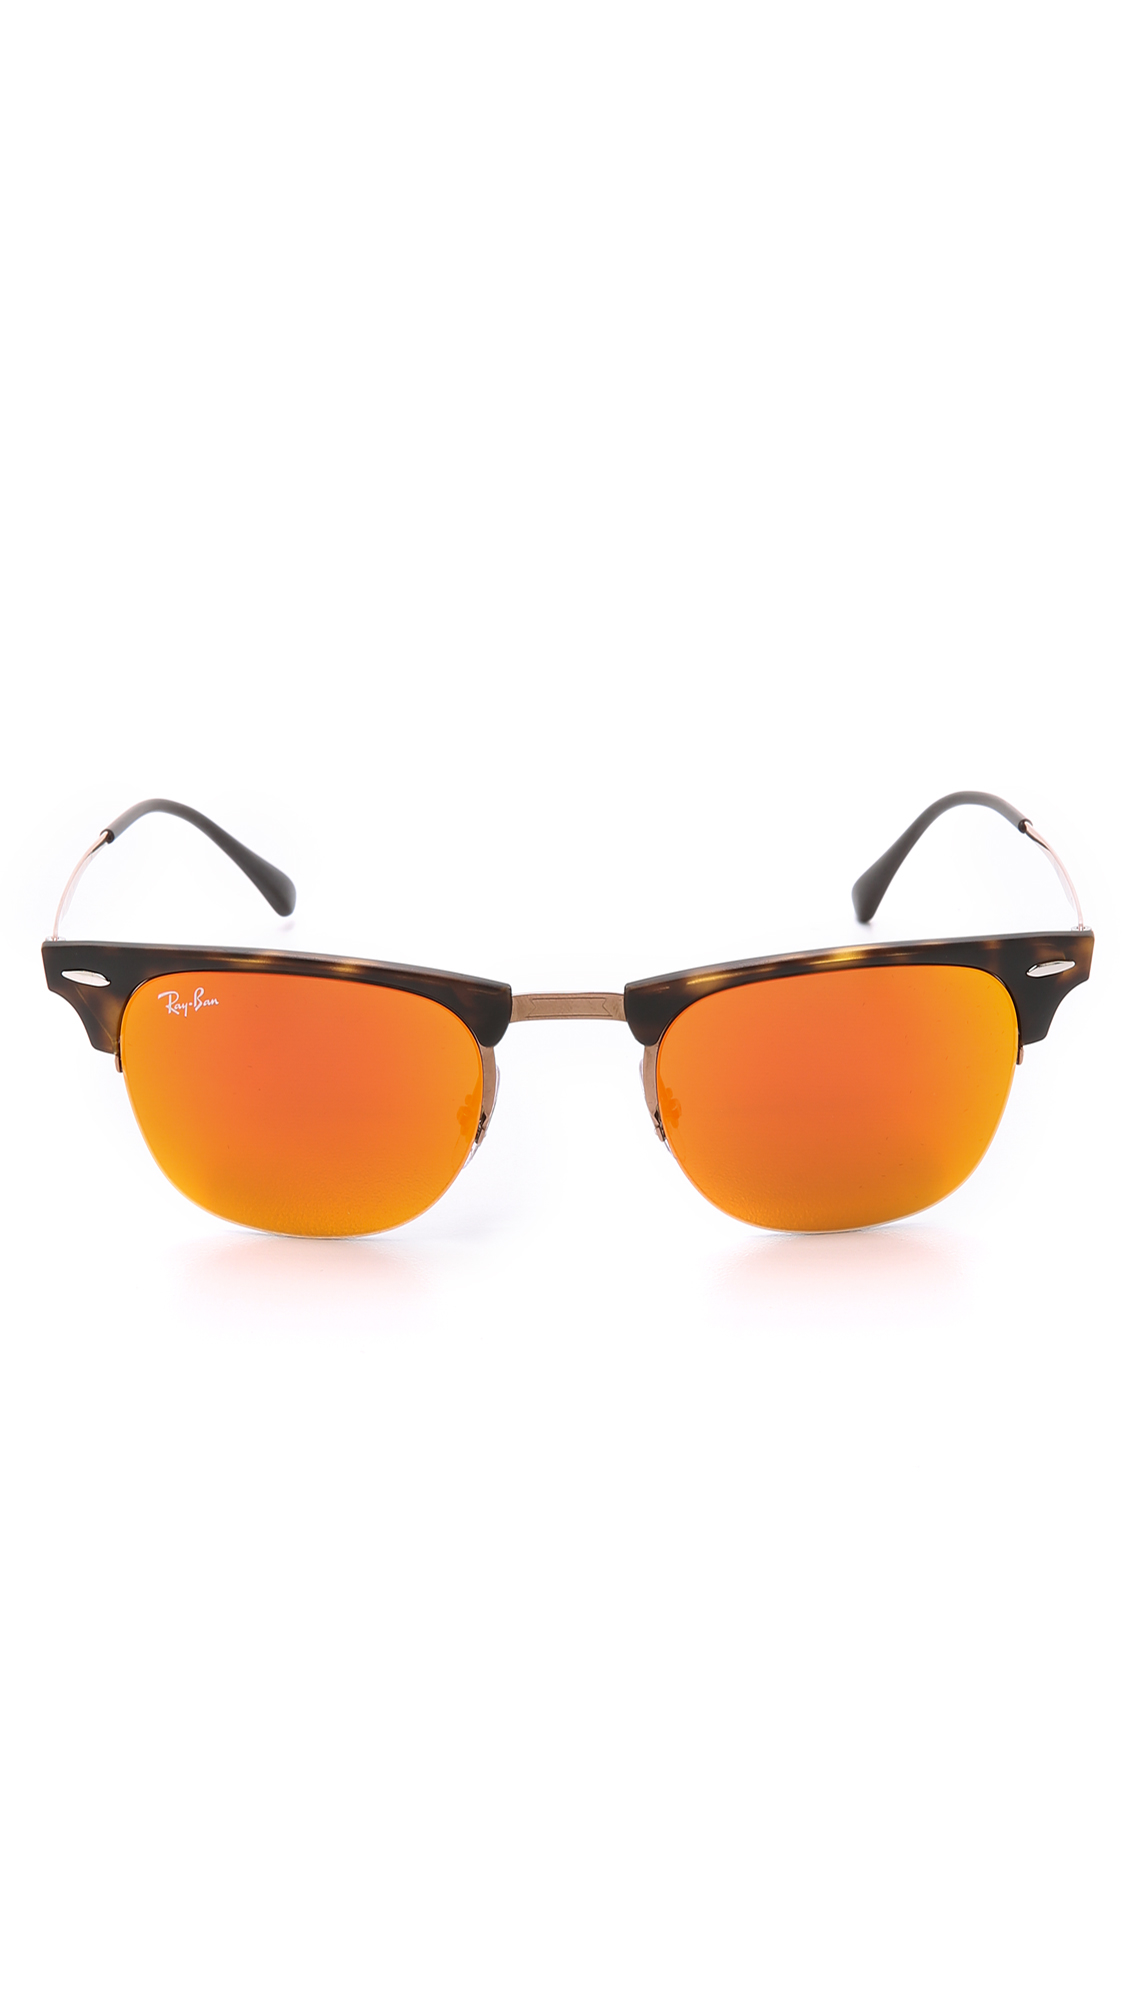 142f8dce86 ... coupon for gallery. previously sold at east dane mens ray ban clubmaster  mens rimless sunglasses